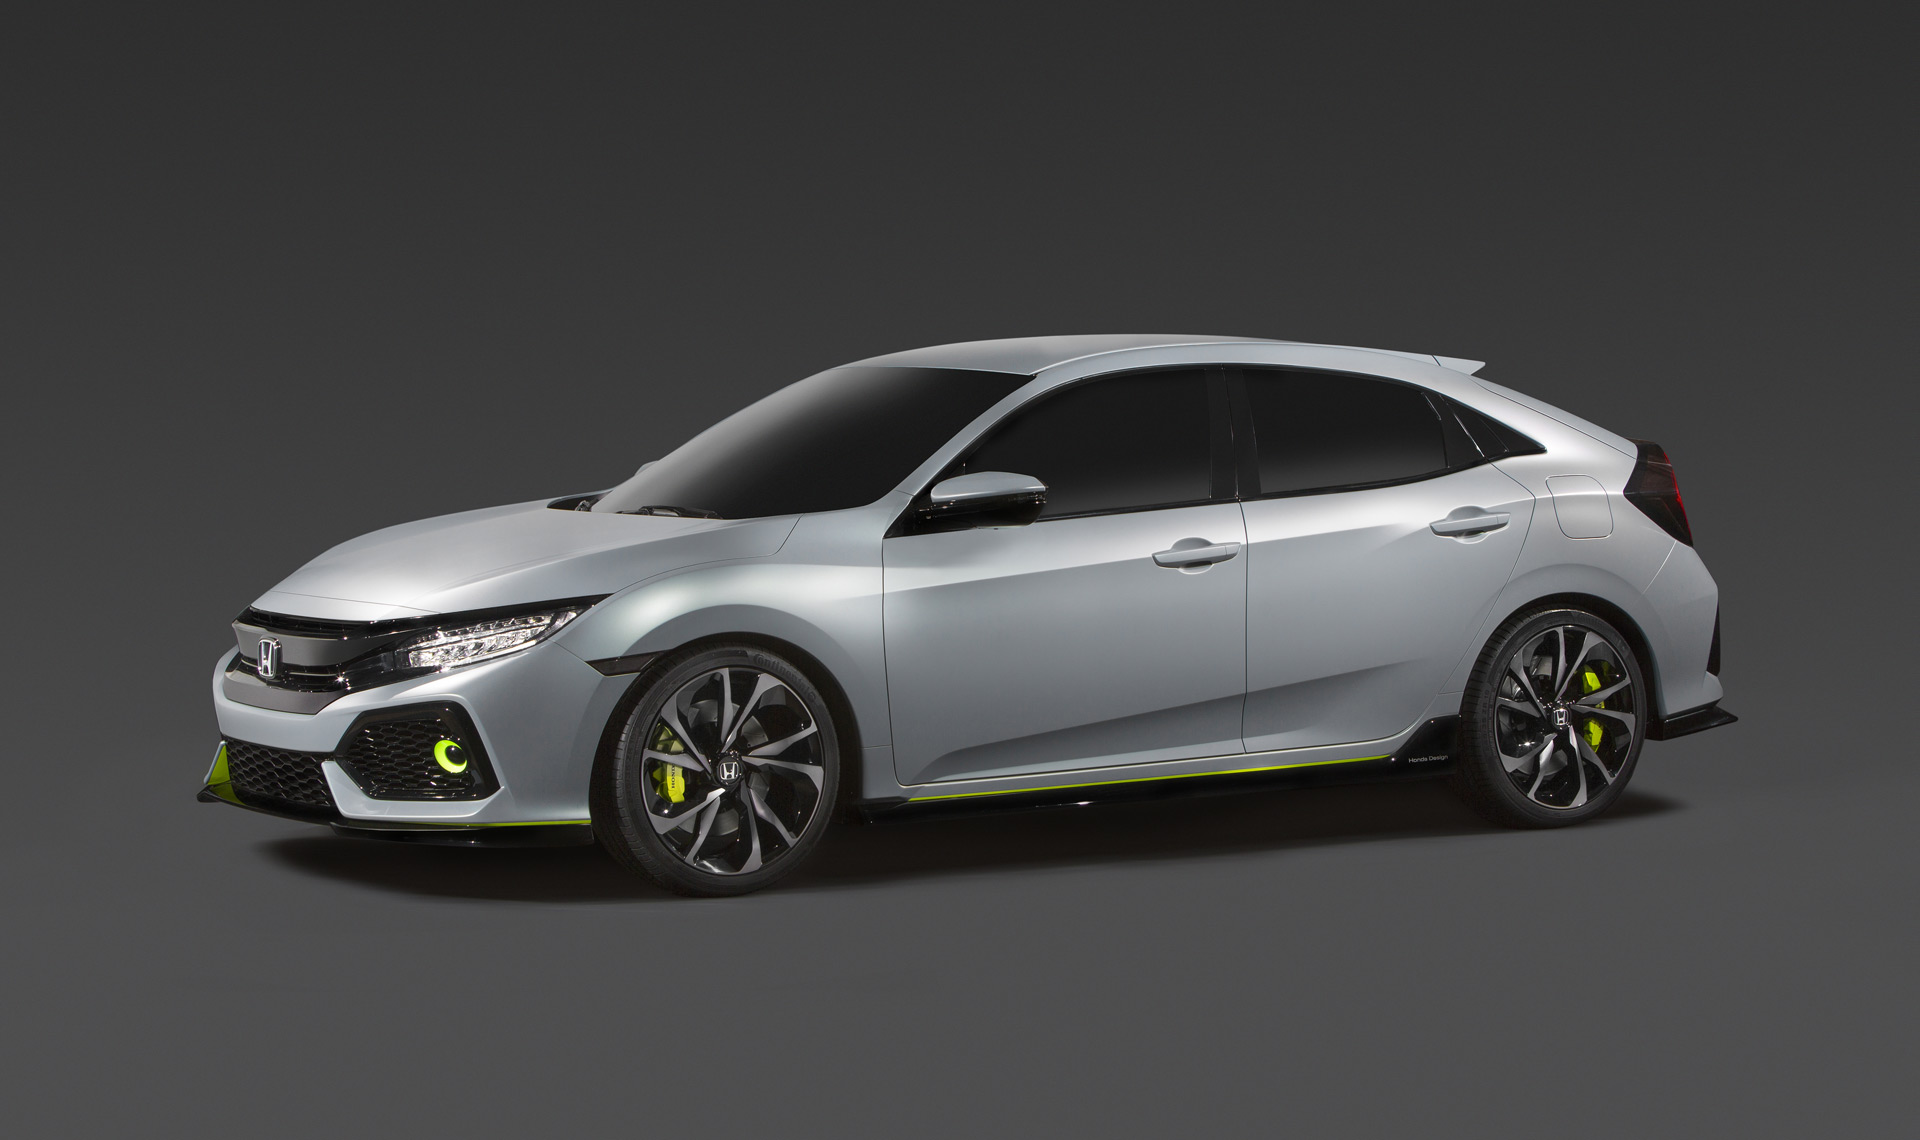 2017 Honda Civic lineup embraces the manual transmission